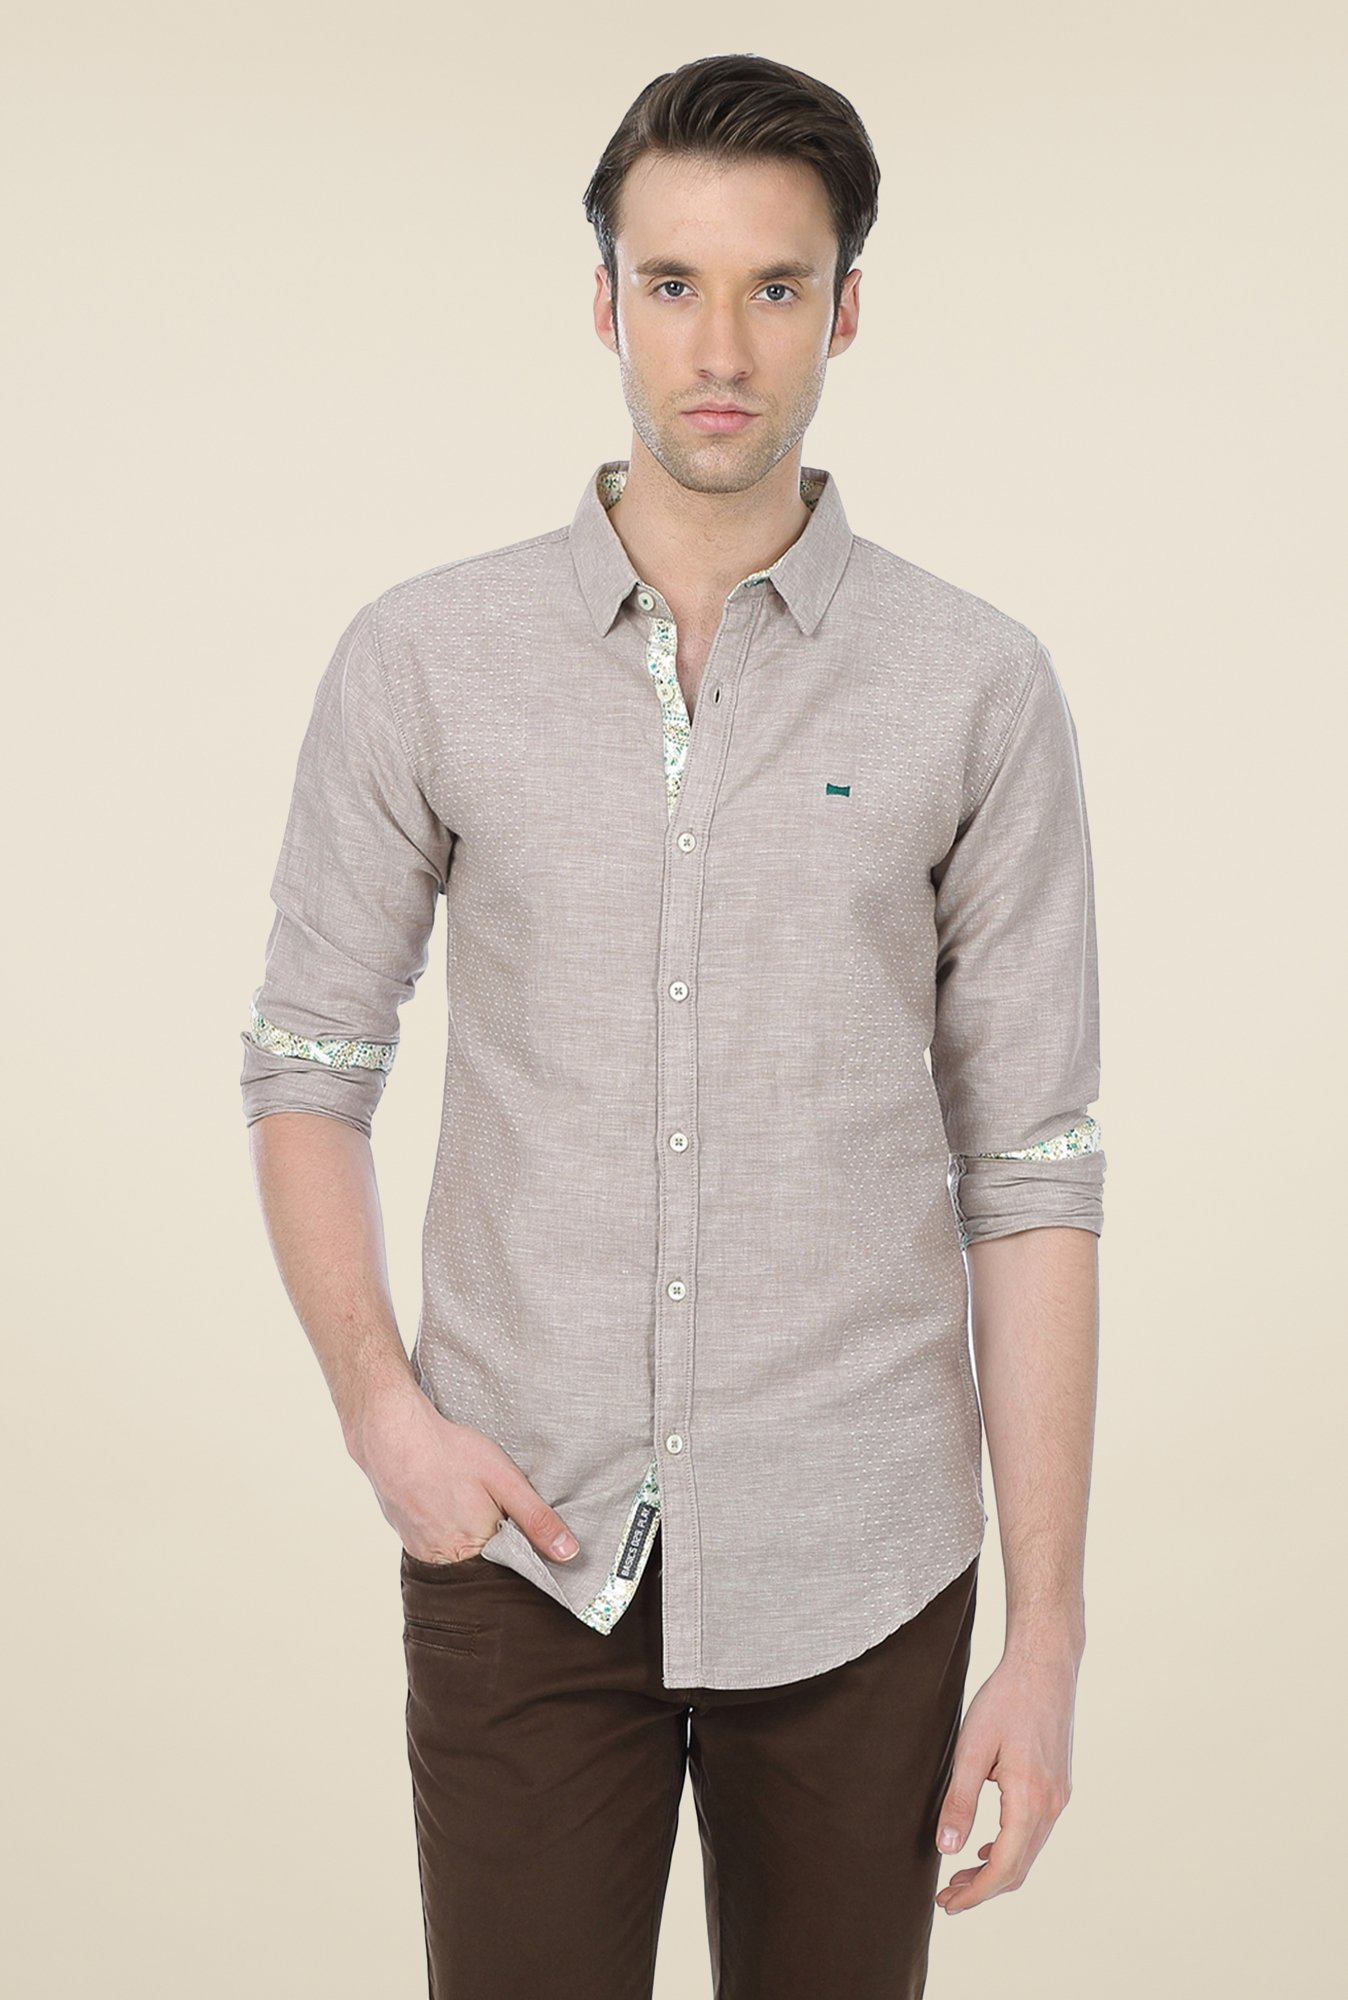 Basics Beige Self Print Shirt